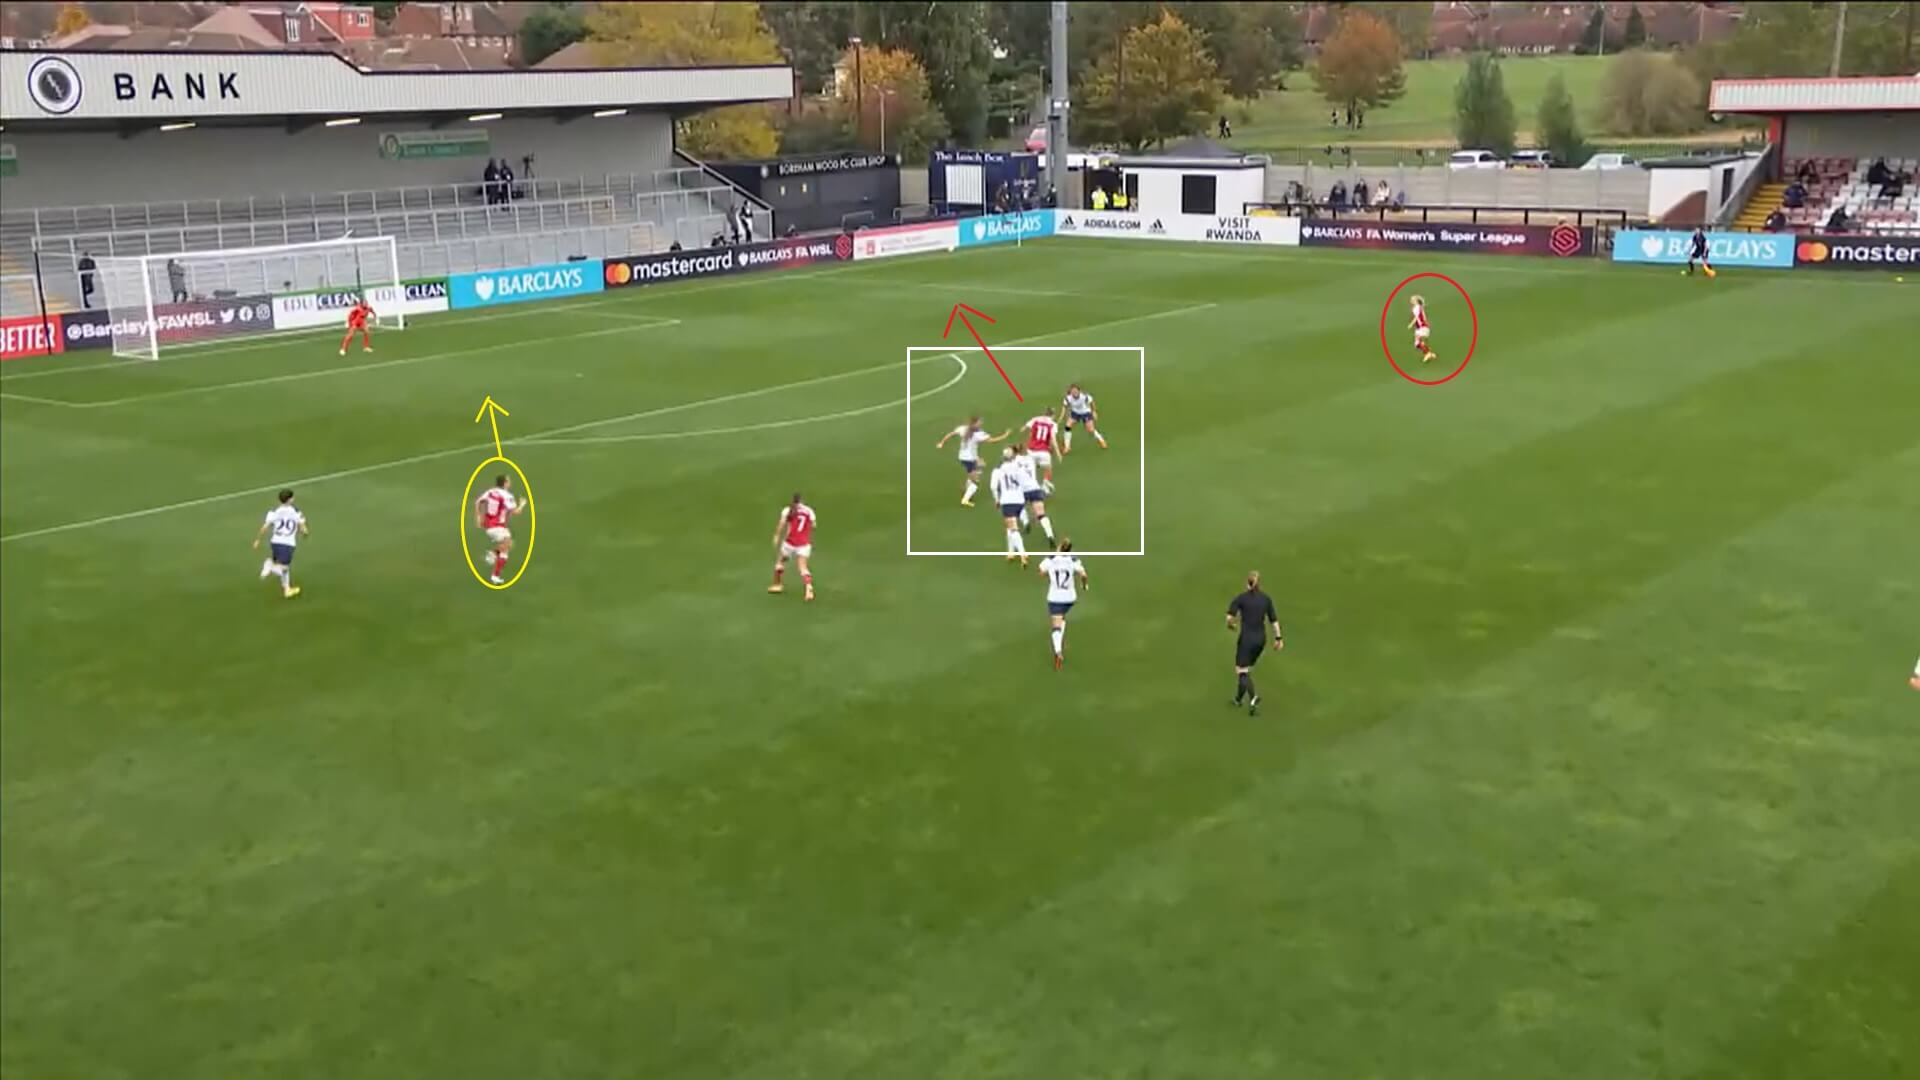 FAWSL 2020/2021: Arsenal Women v Tottenham Hotspur Women - tactical analysis tactics